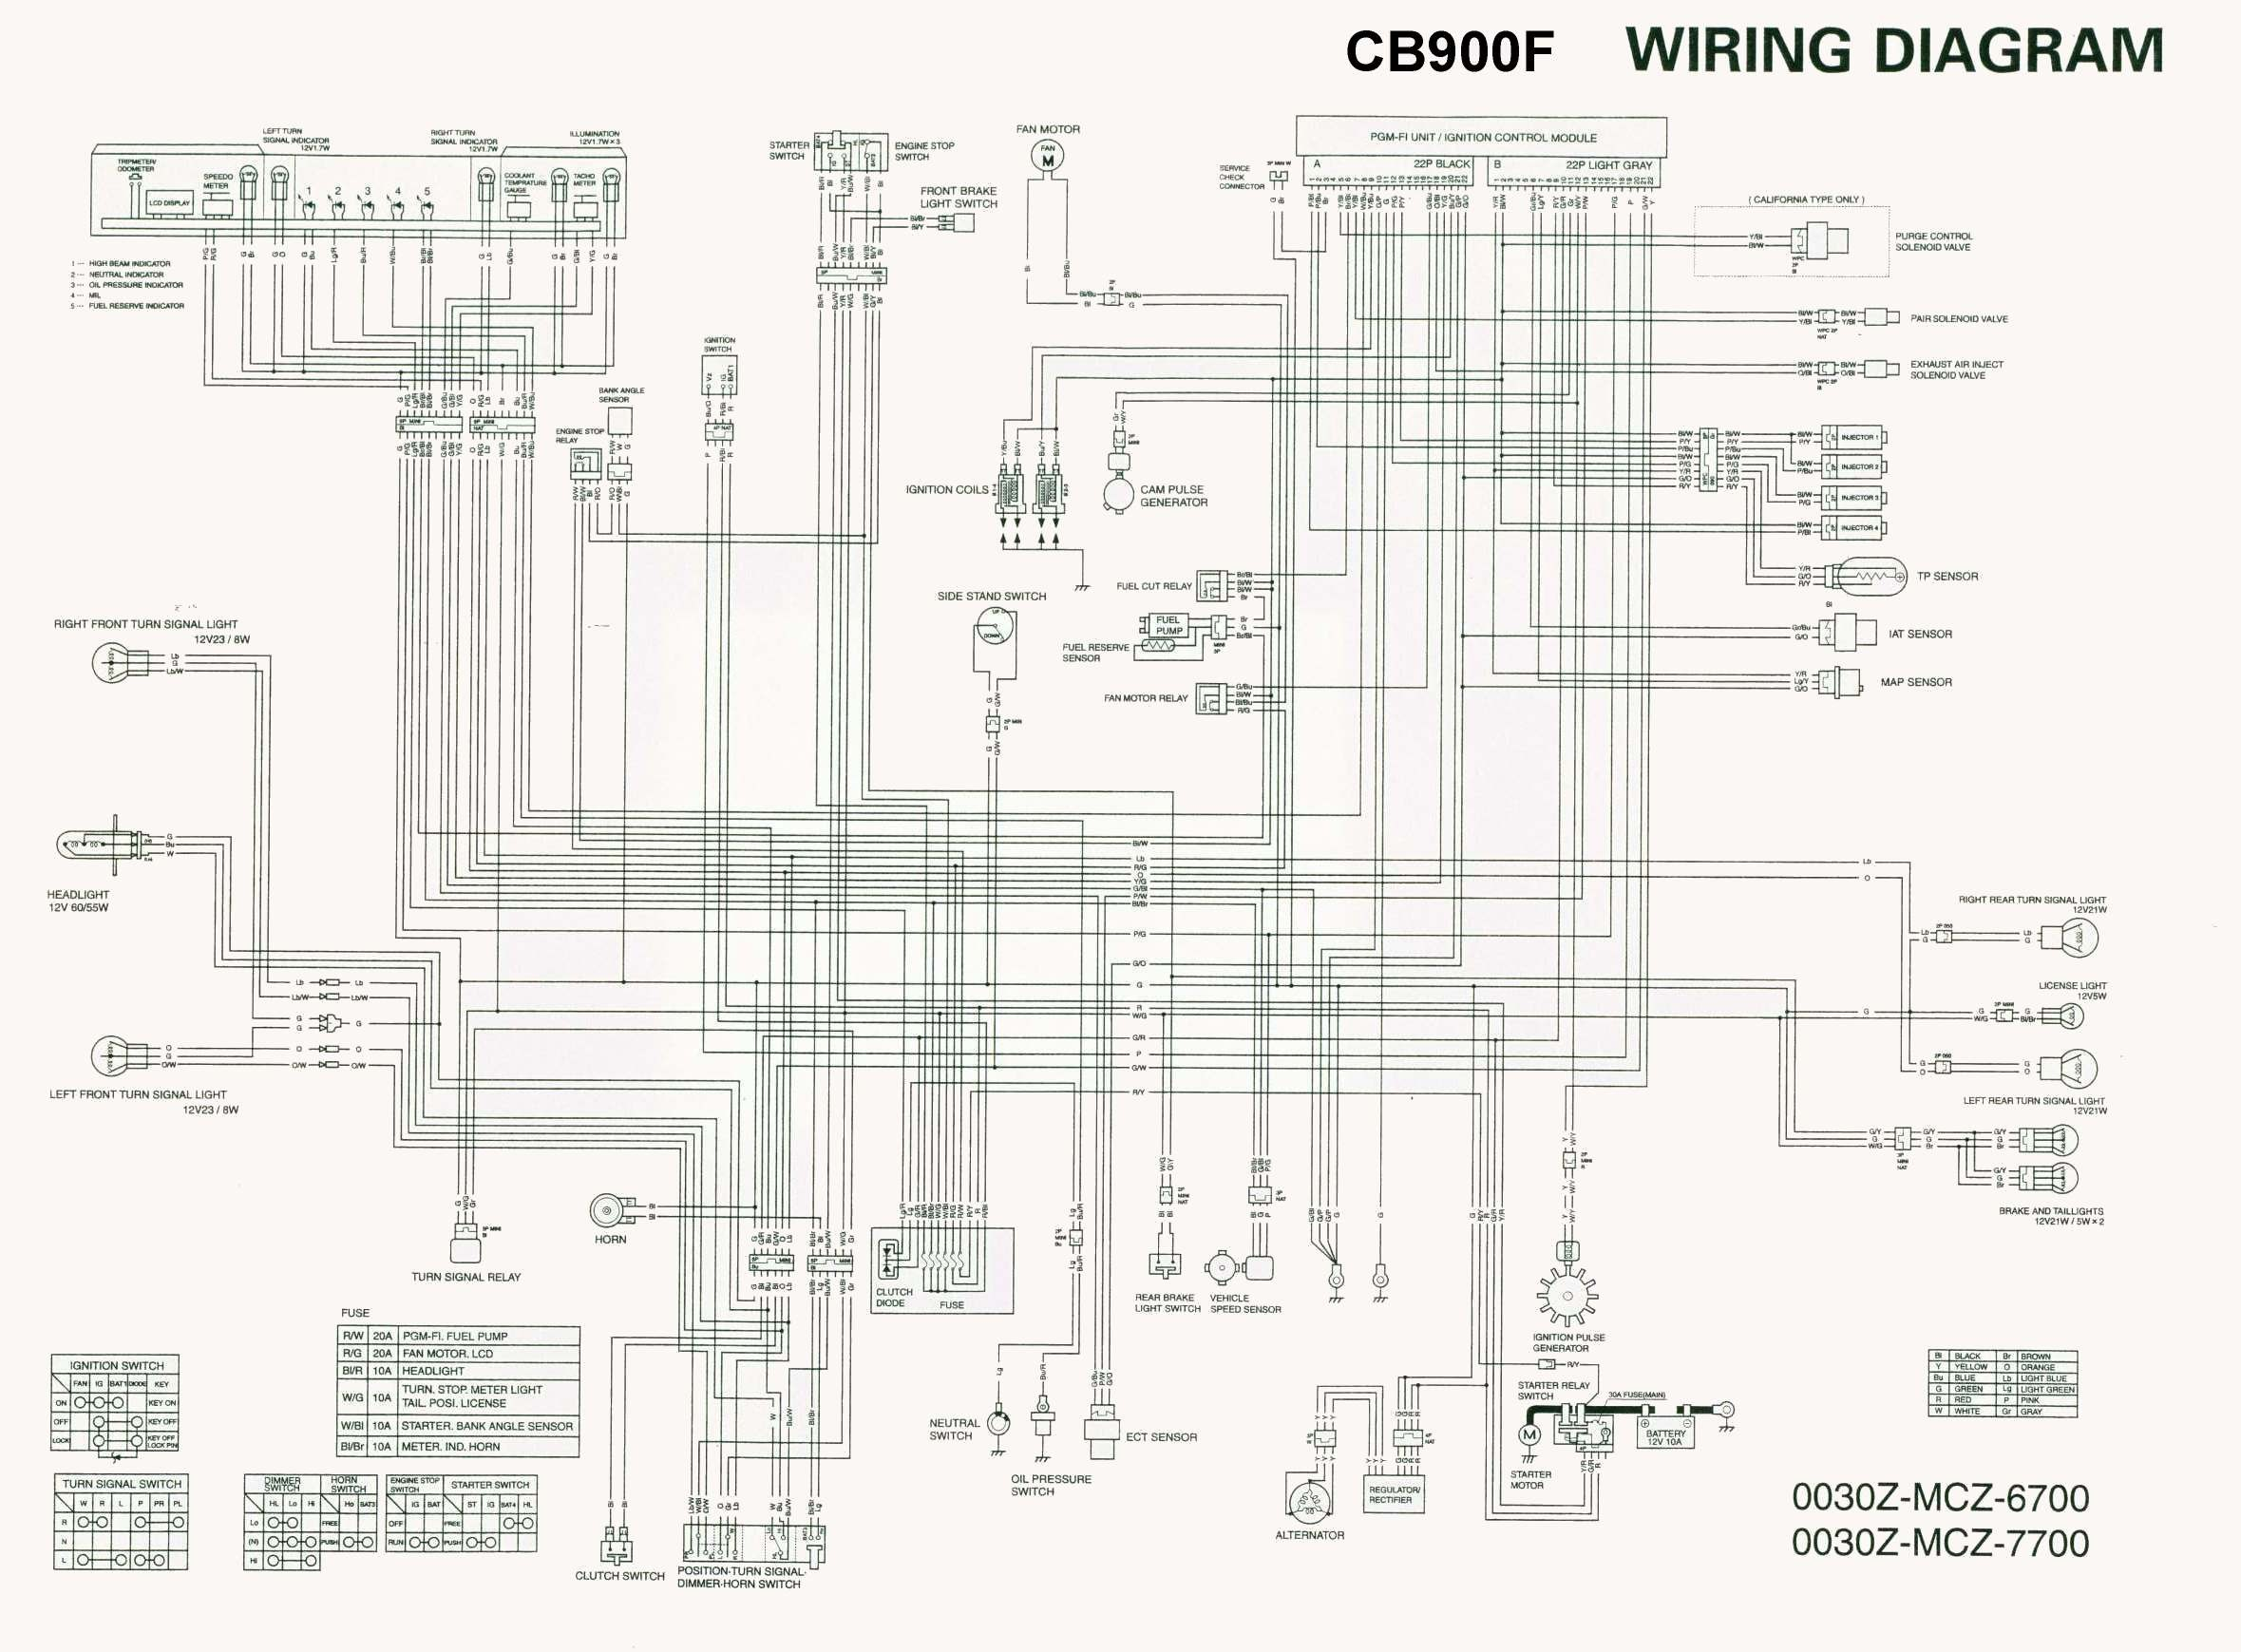 Honda 300 Cdi Wire Diagram. Honda. Wiring Diagram Images